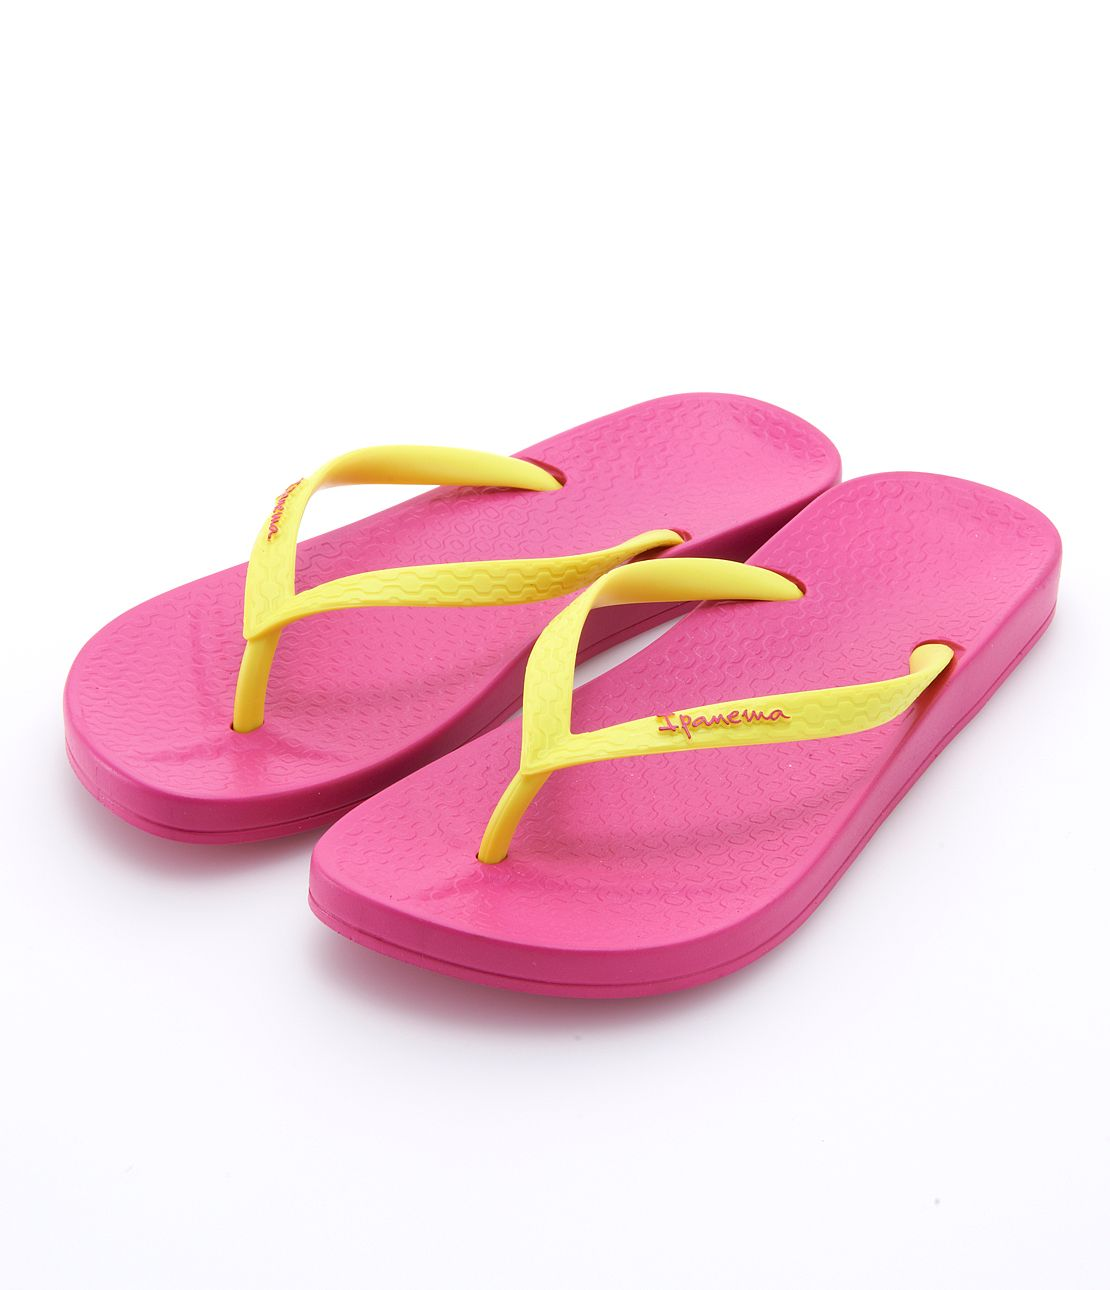 Ipanema simple beach sandals